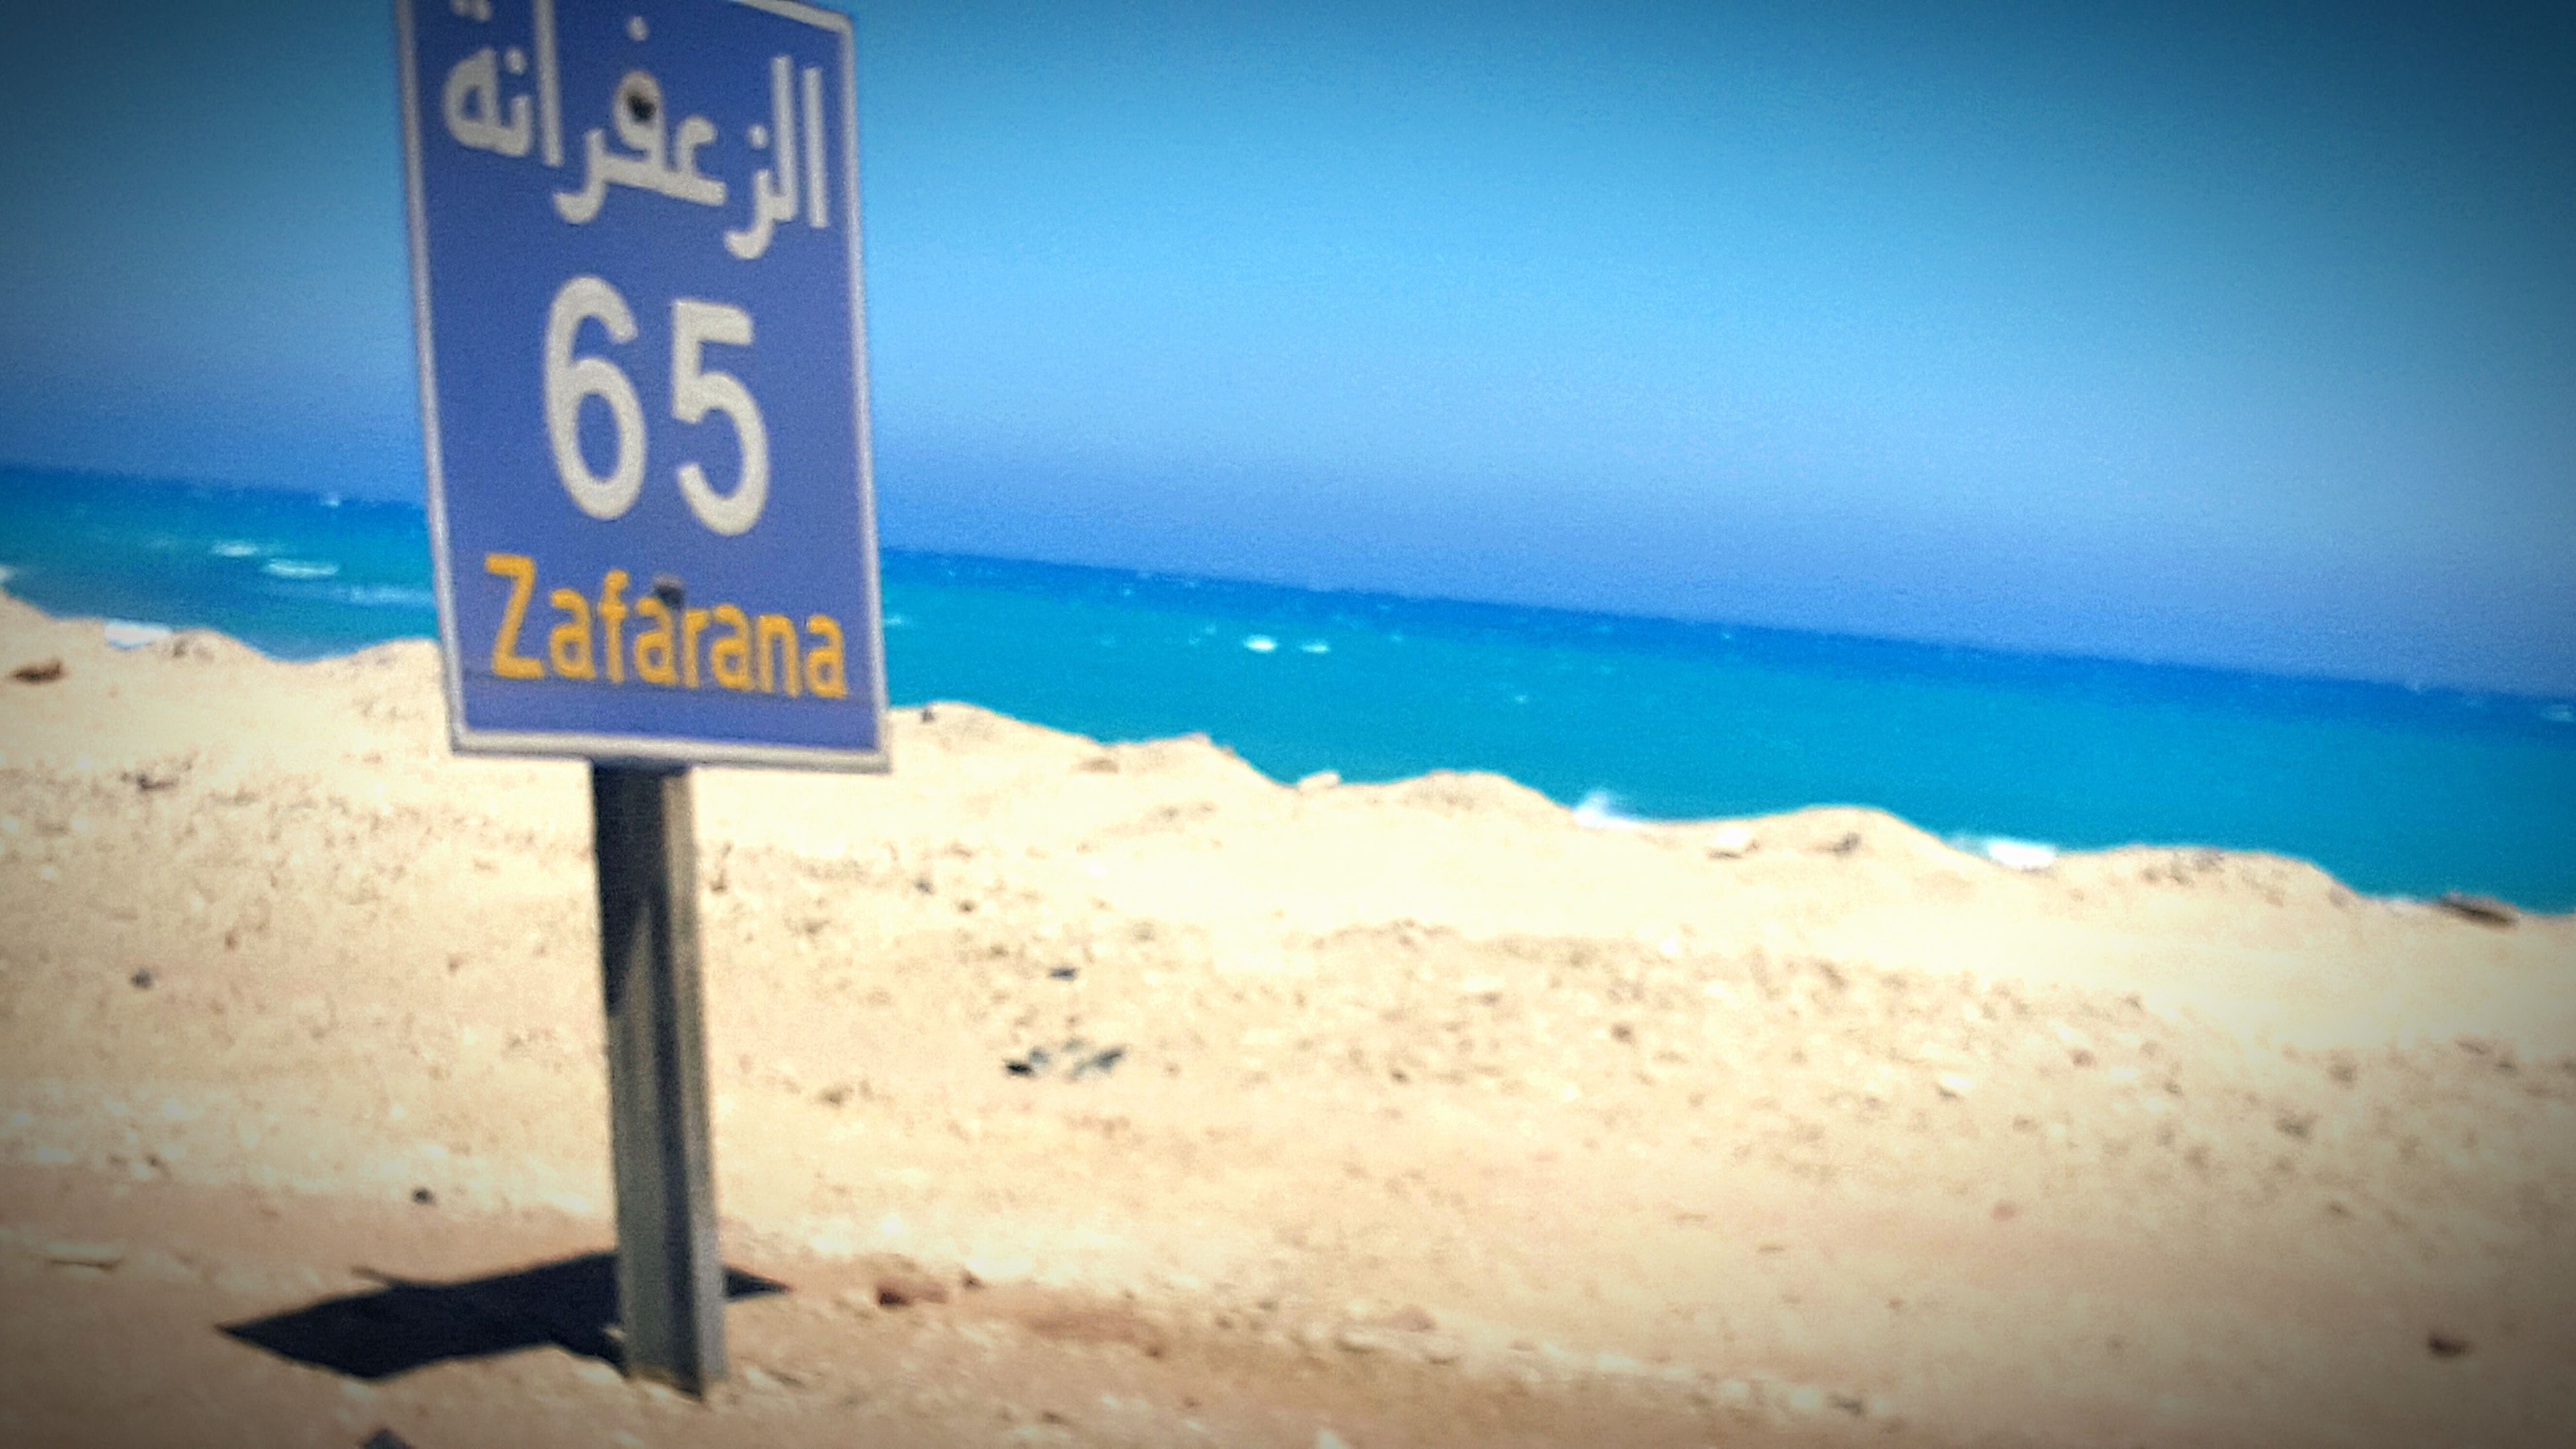 sea, text, horizon over water, western script, communication, beach, guidance, water, blue, shore, sign, information sign, sand, clear sky, copy space, tranquil scene, tranquility, warning sign, capital letter, scenics